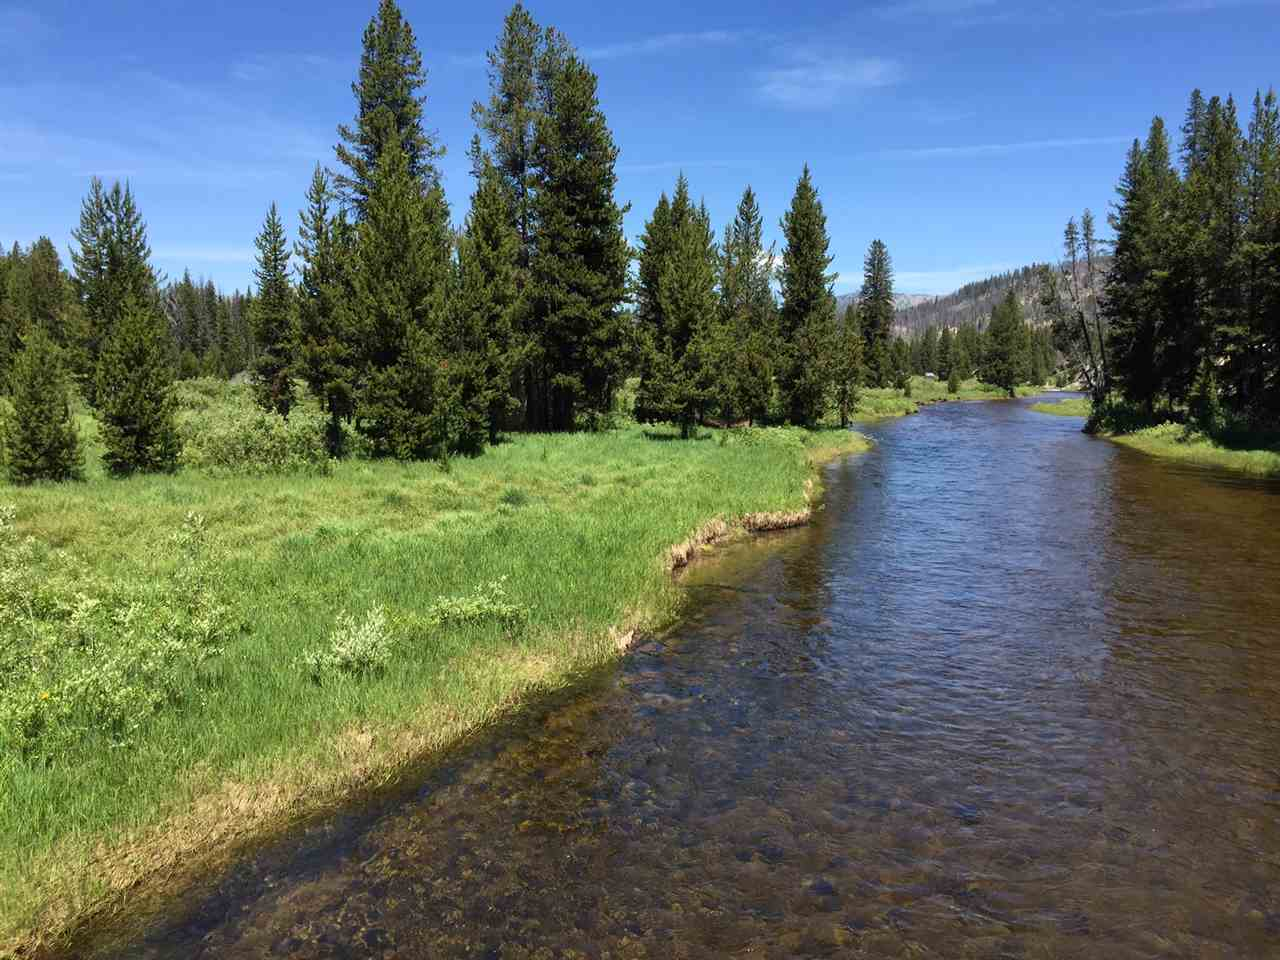 Recreational Property for Sale at TBD Secesh Lane TBD Secesh Lane Warren, Idaho 83671